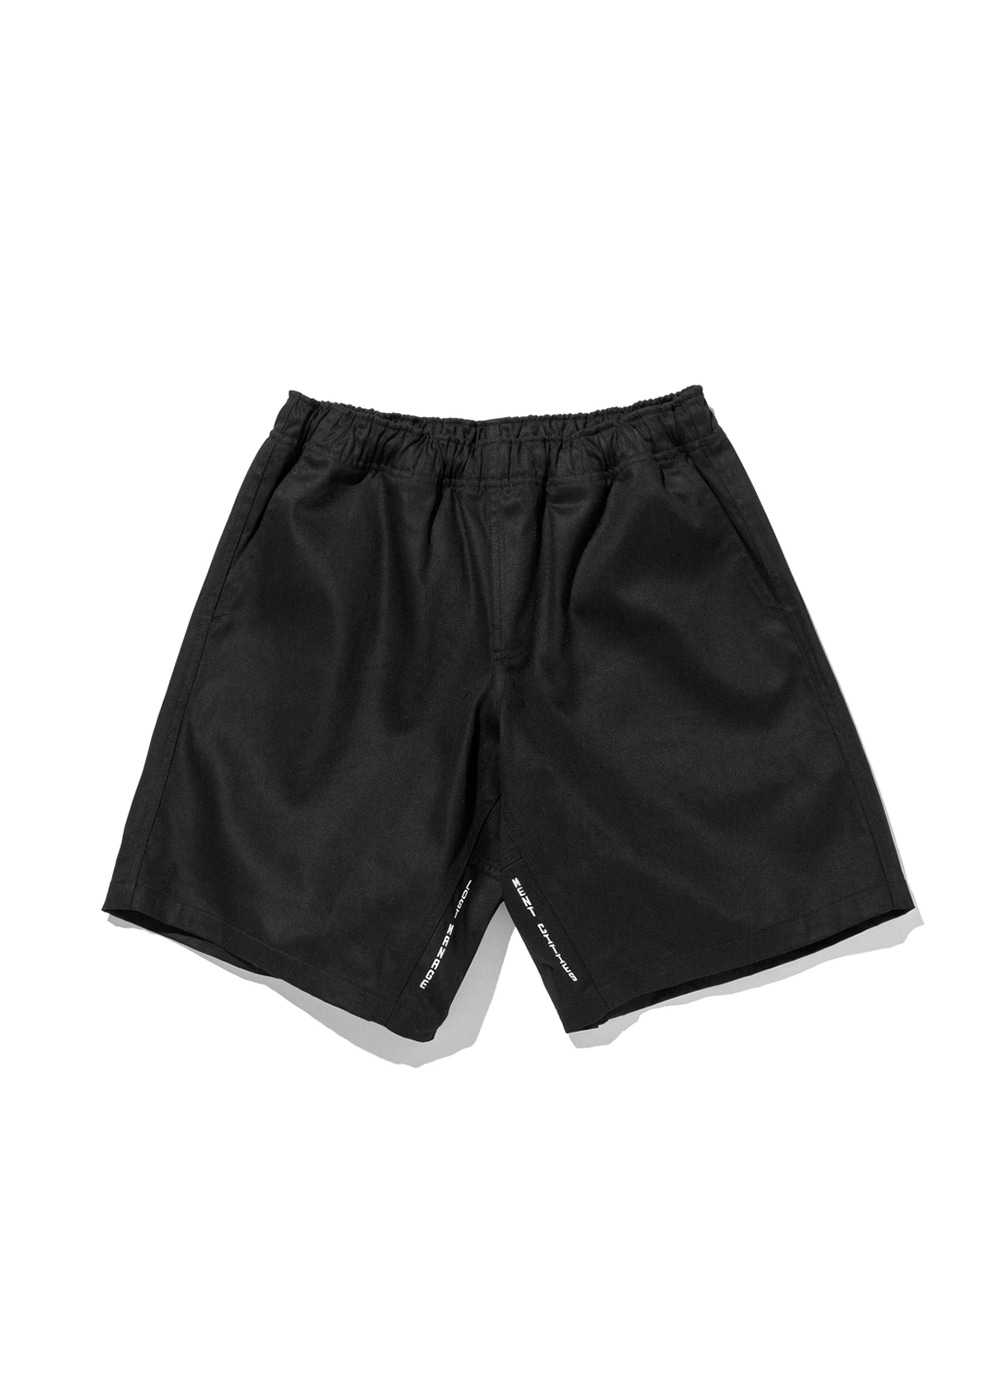 LMC COTTON SHORTS black